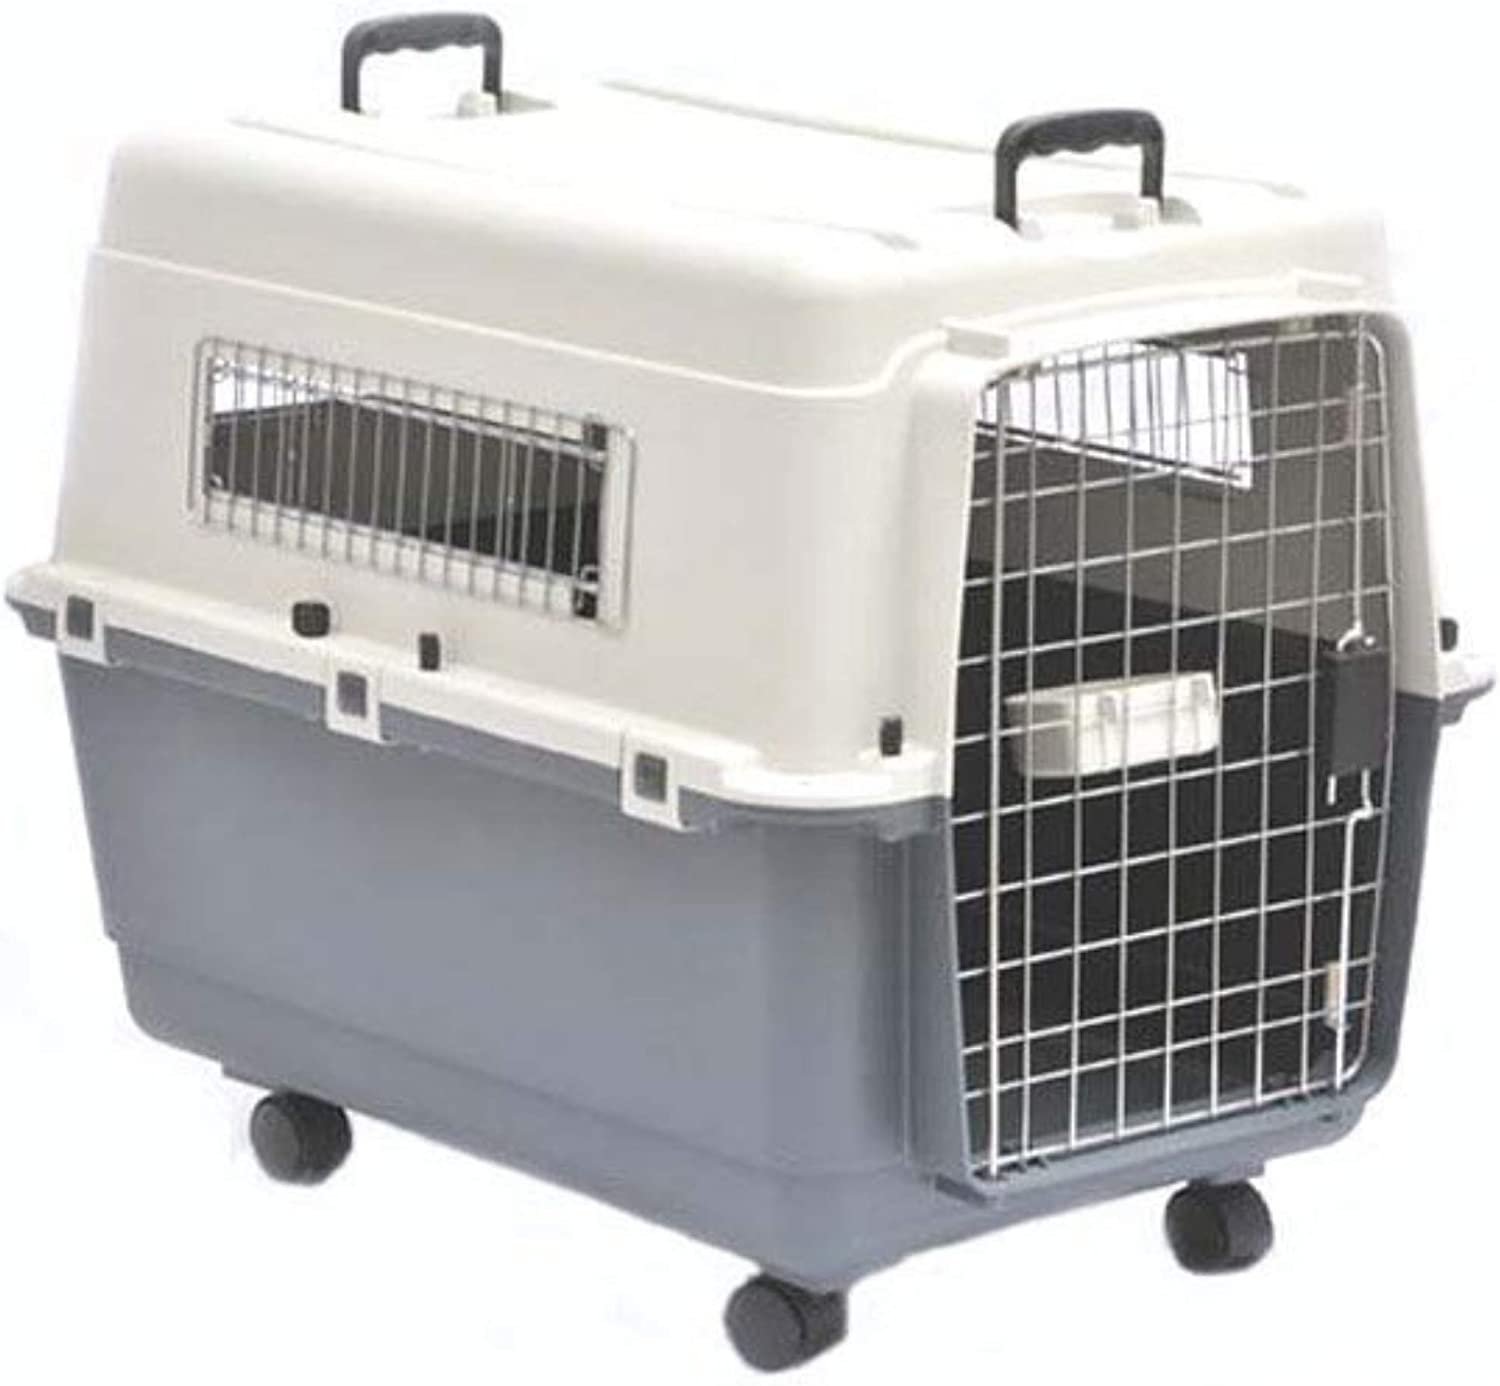 Barkshire Dog Carrier Airline Approved  Giant 67 x 100cm